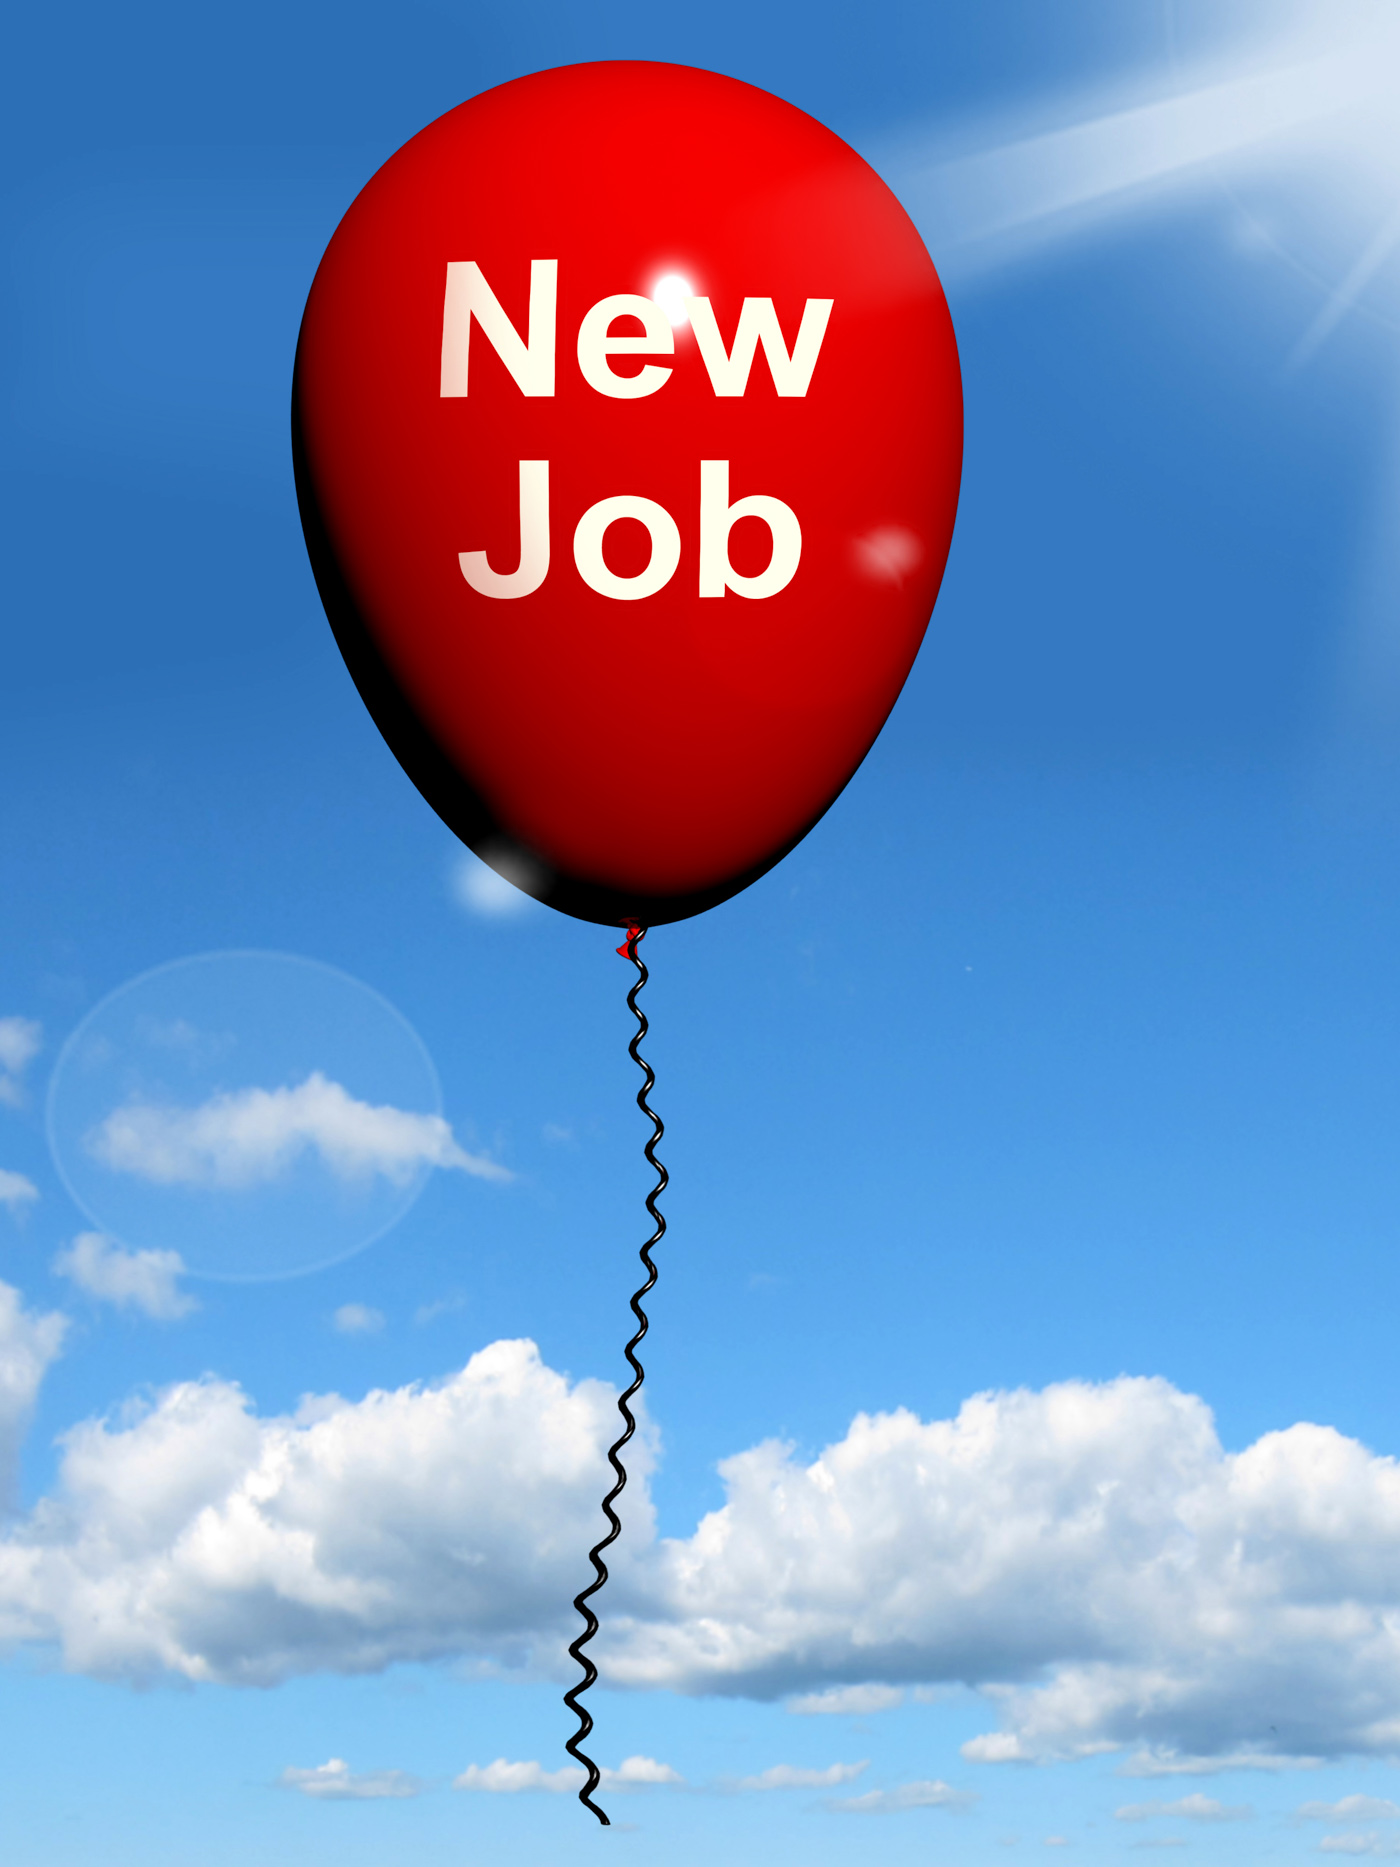 New job balloon shows new beginnings in careers photo